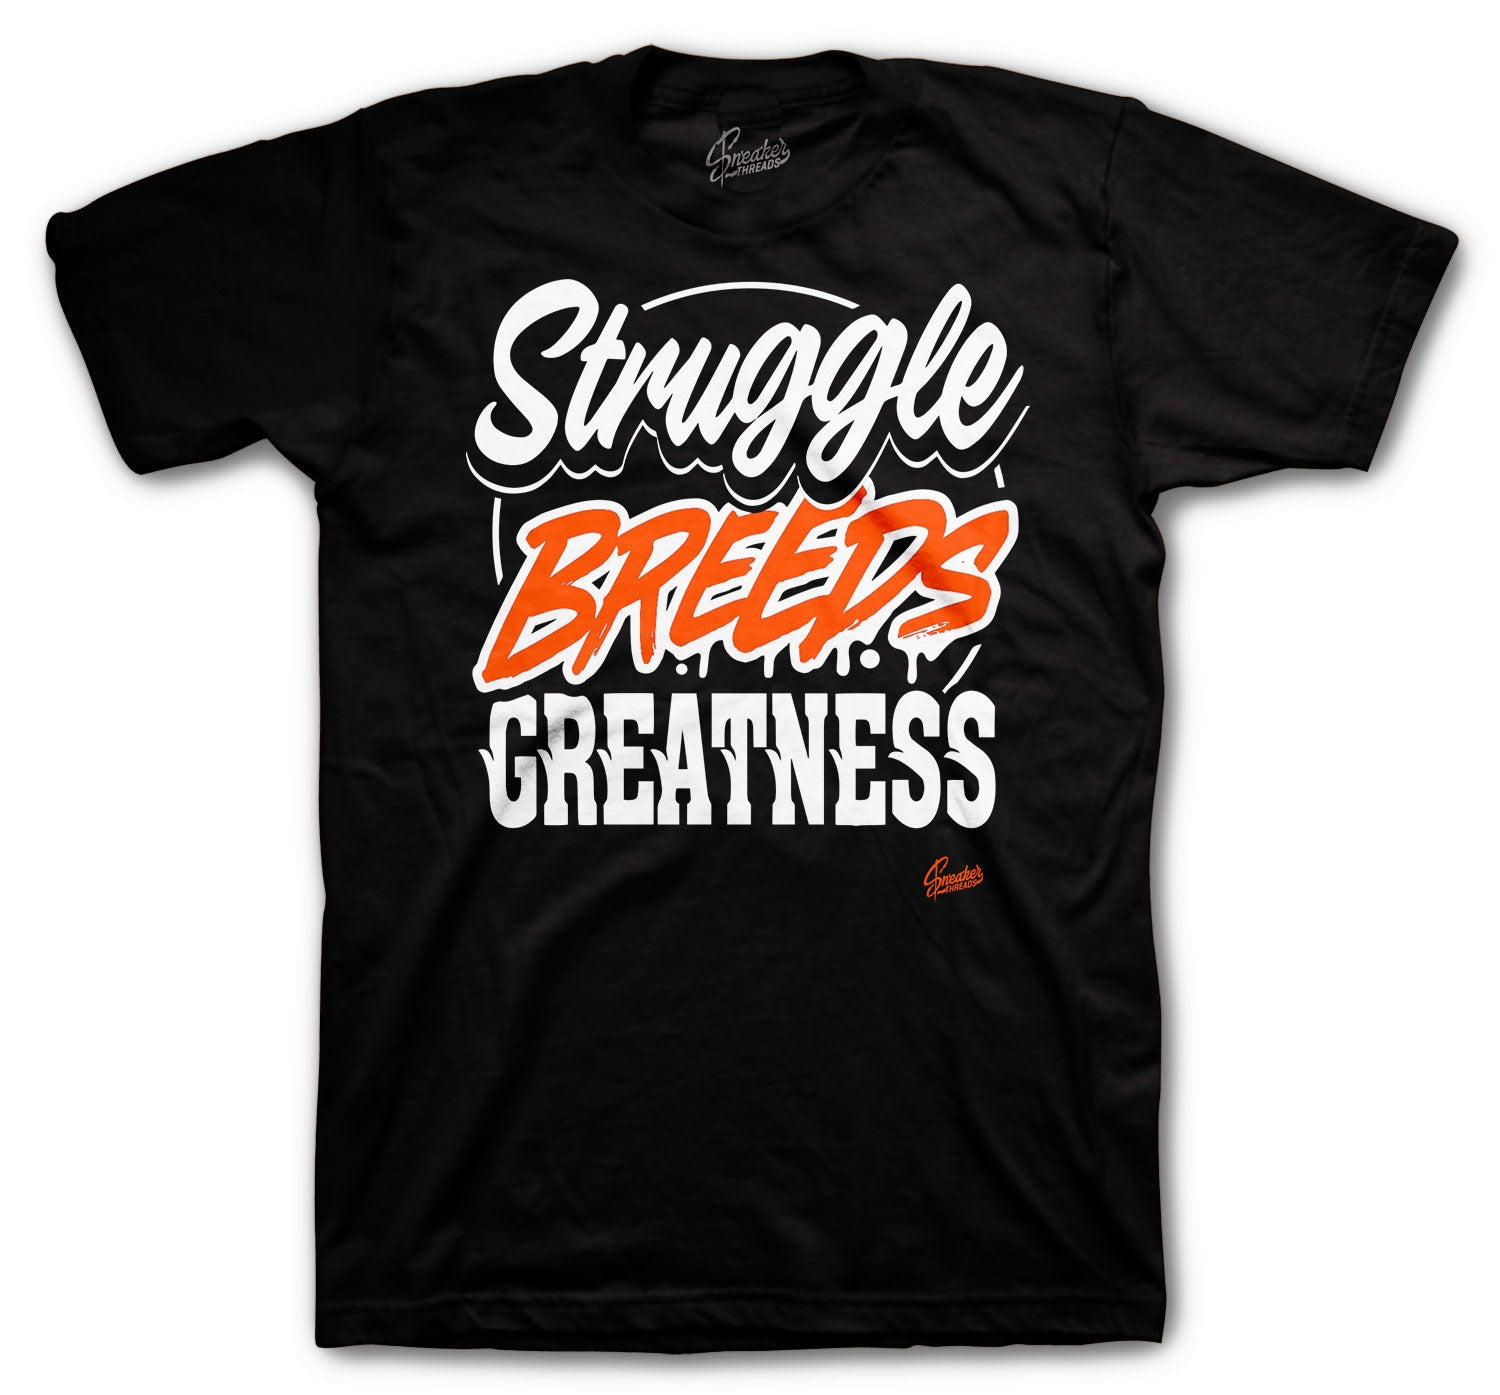 Jordan Starfish Struggle Breeds Shirt